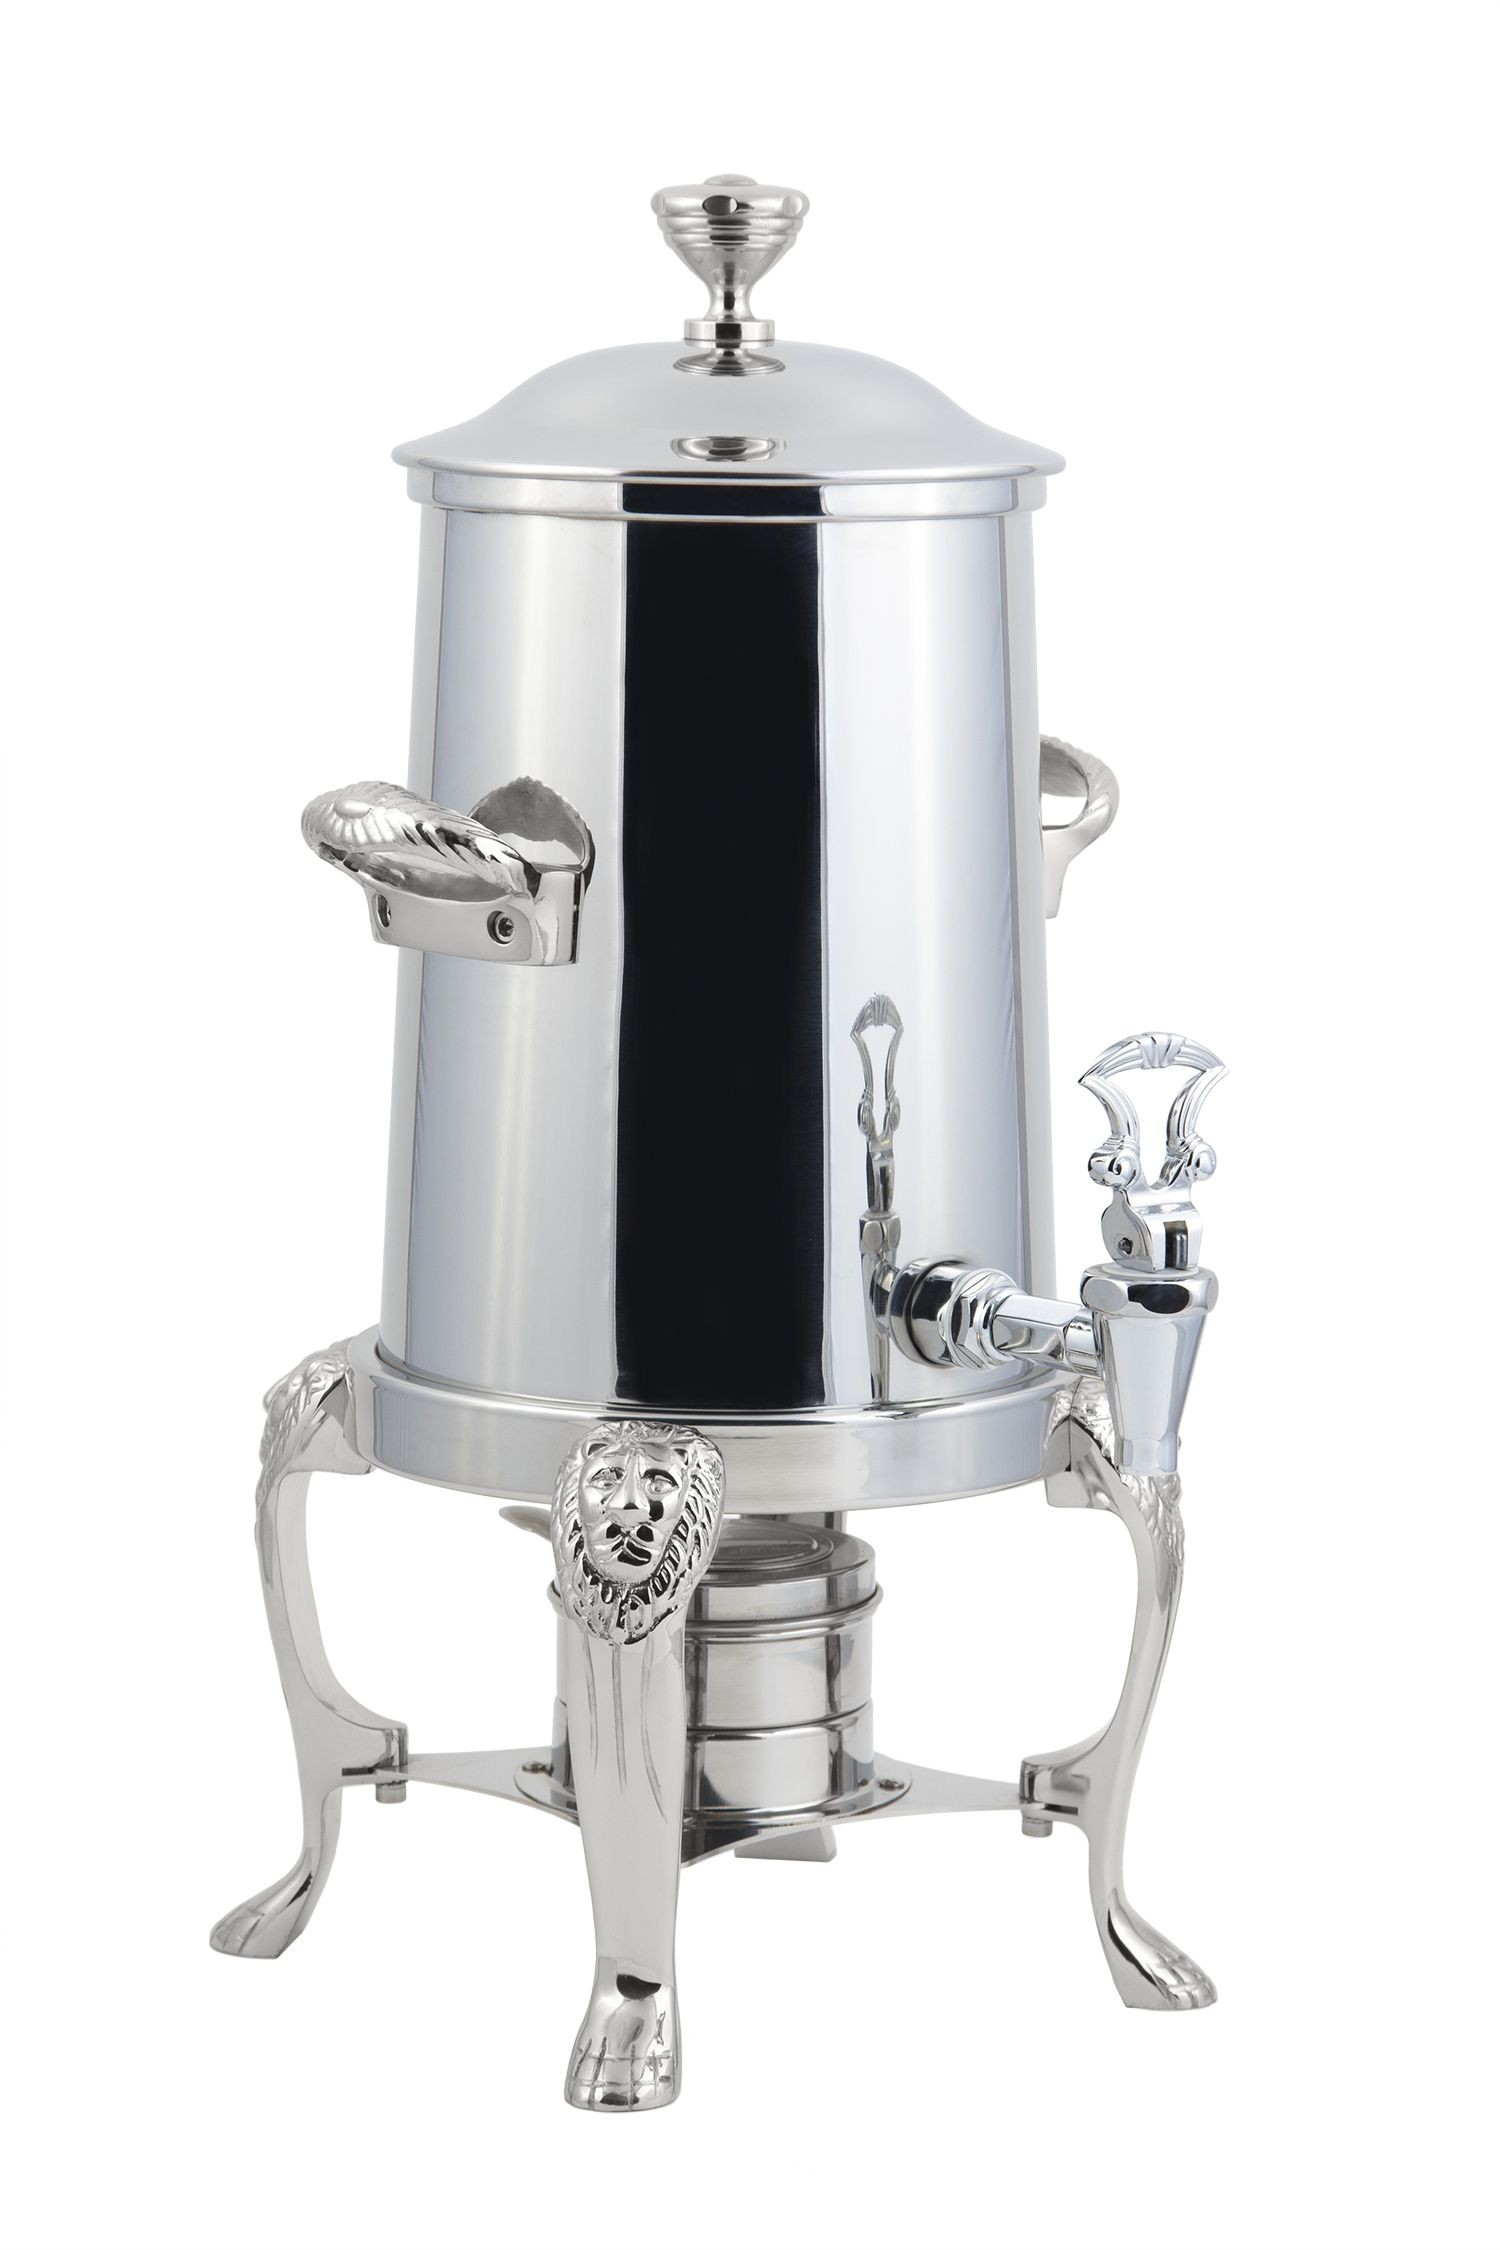 Bon Chef 48105C Lion Non-Insulated Coffee Urn with Chrome Trim, 5 1/2 Gallon